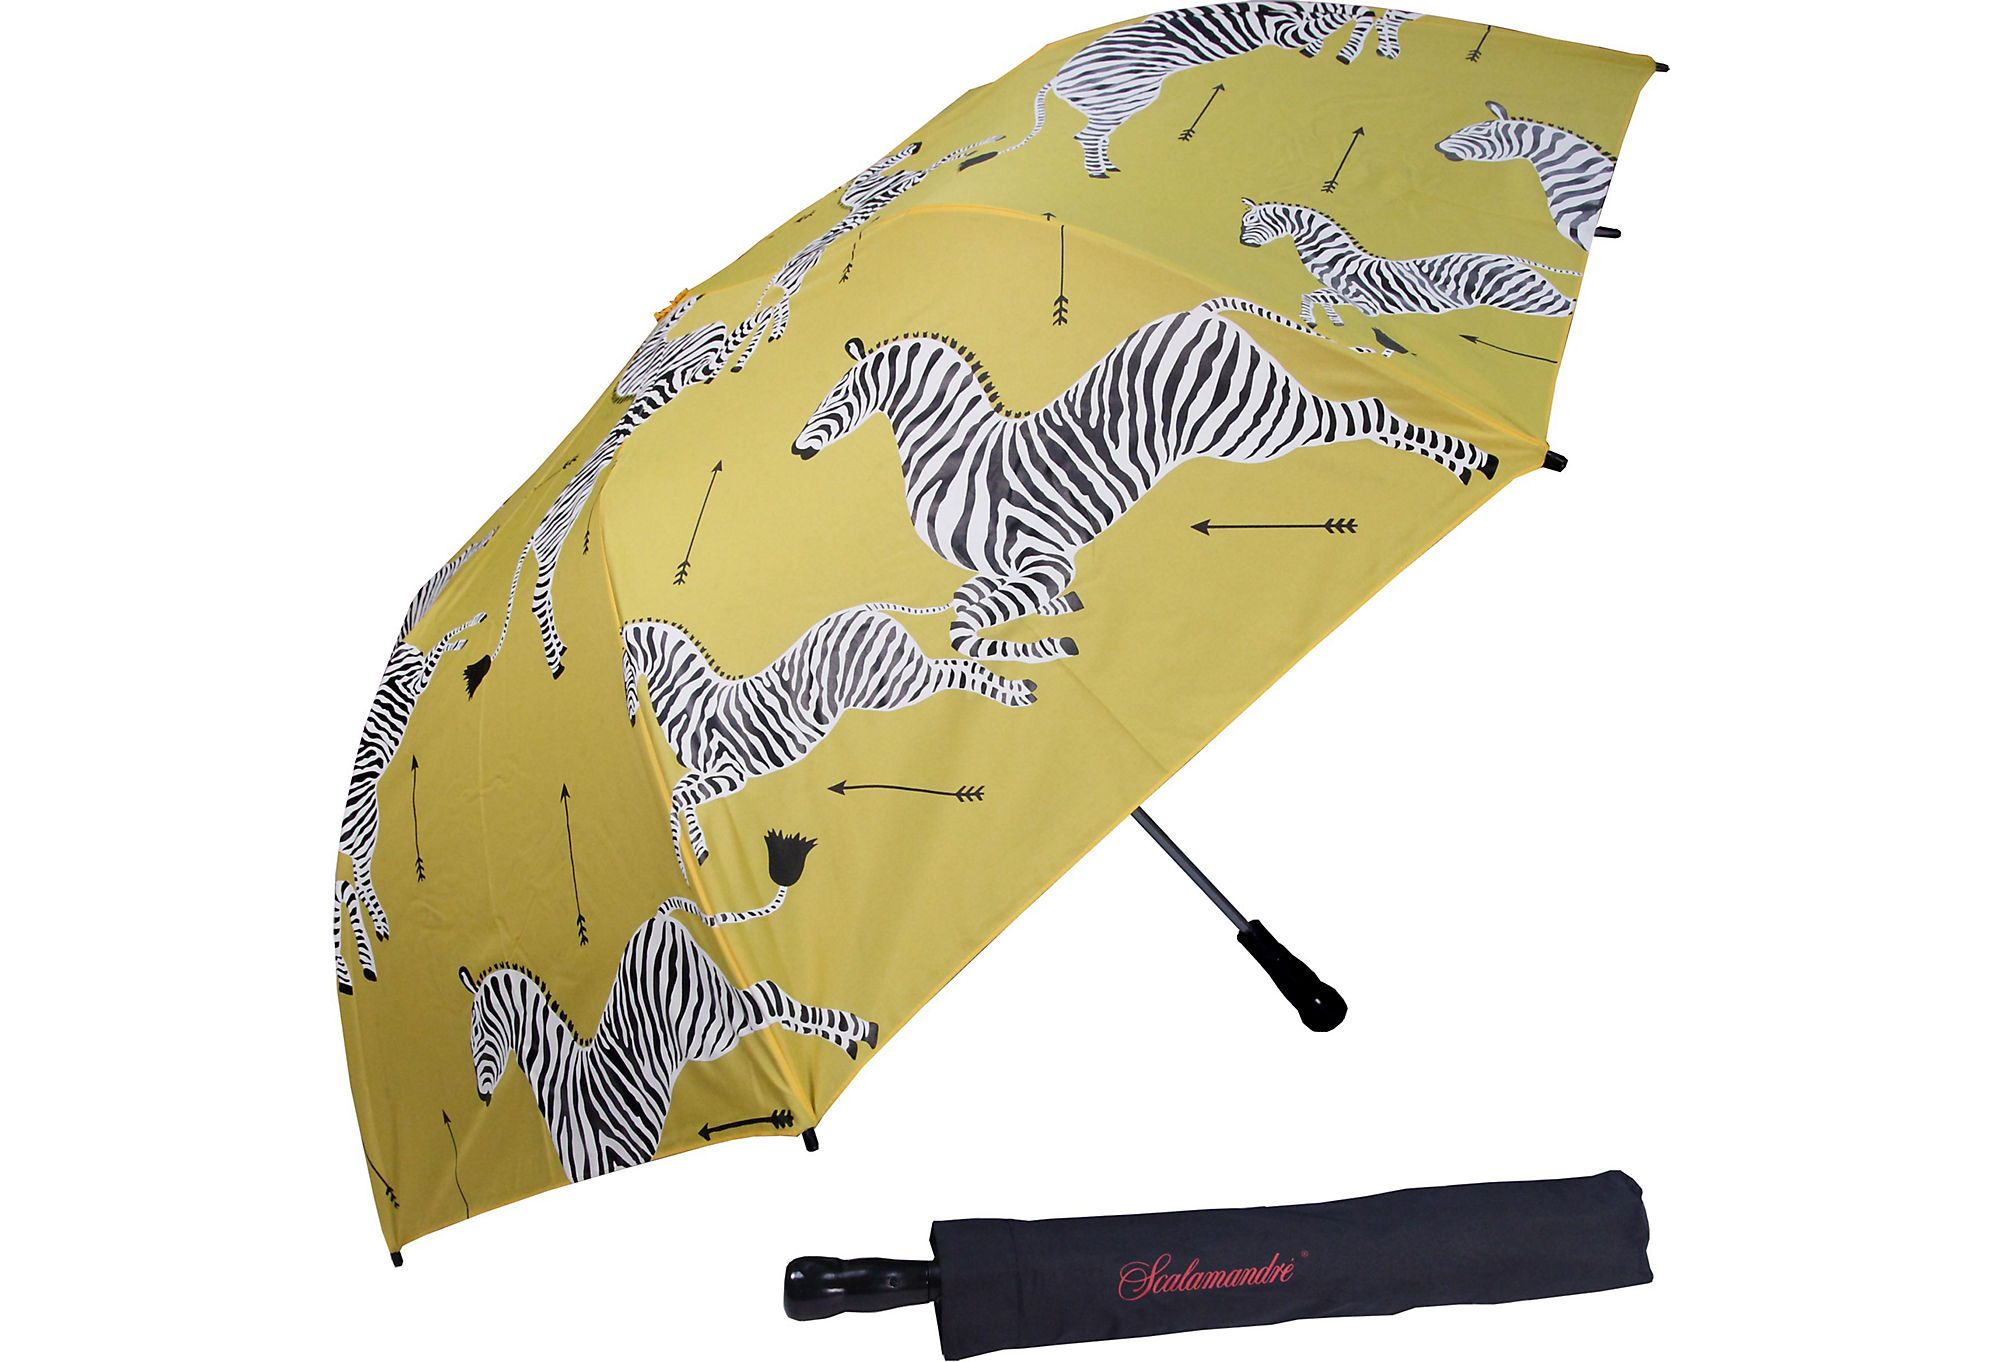 i so wish I needed a $65.00 umbrella! one of my favorite patterns.